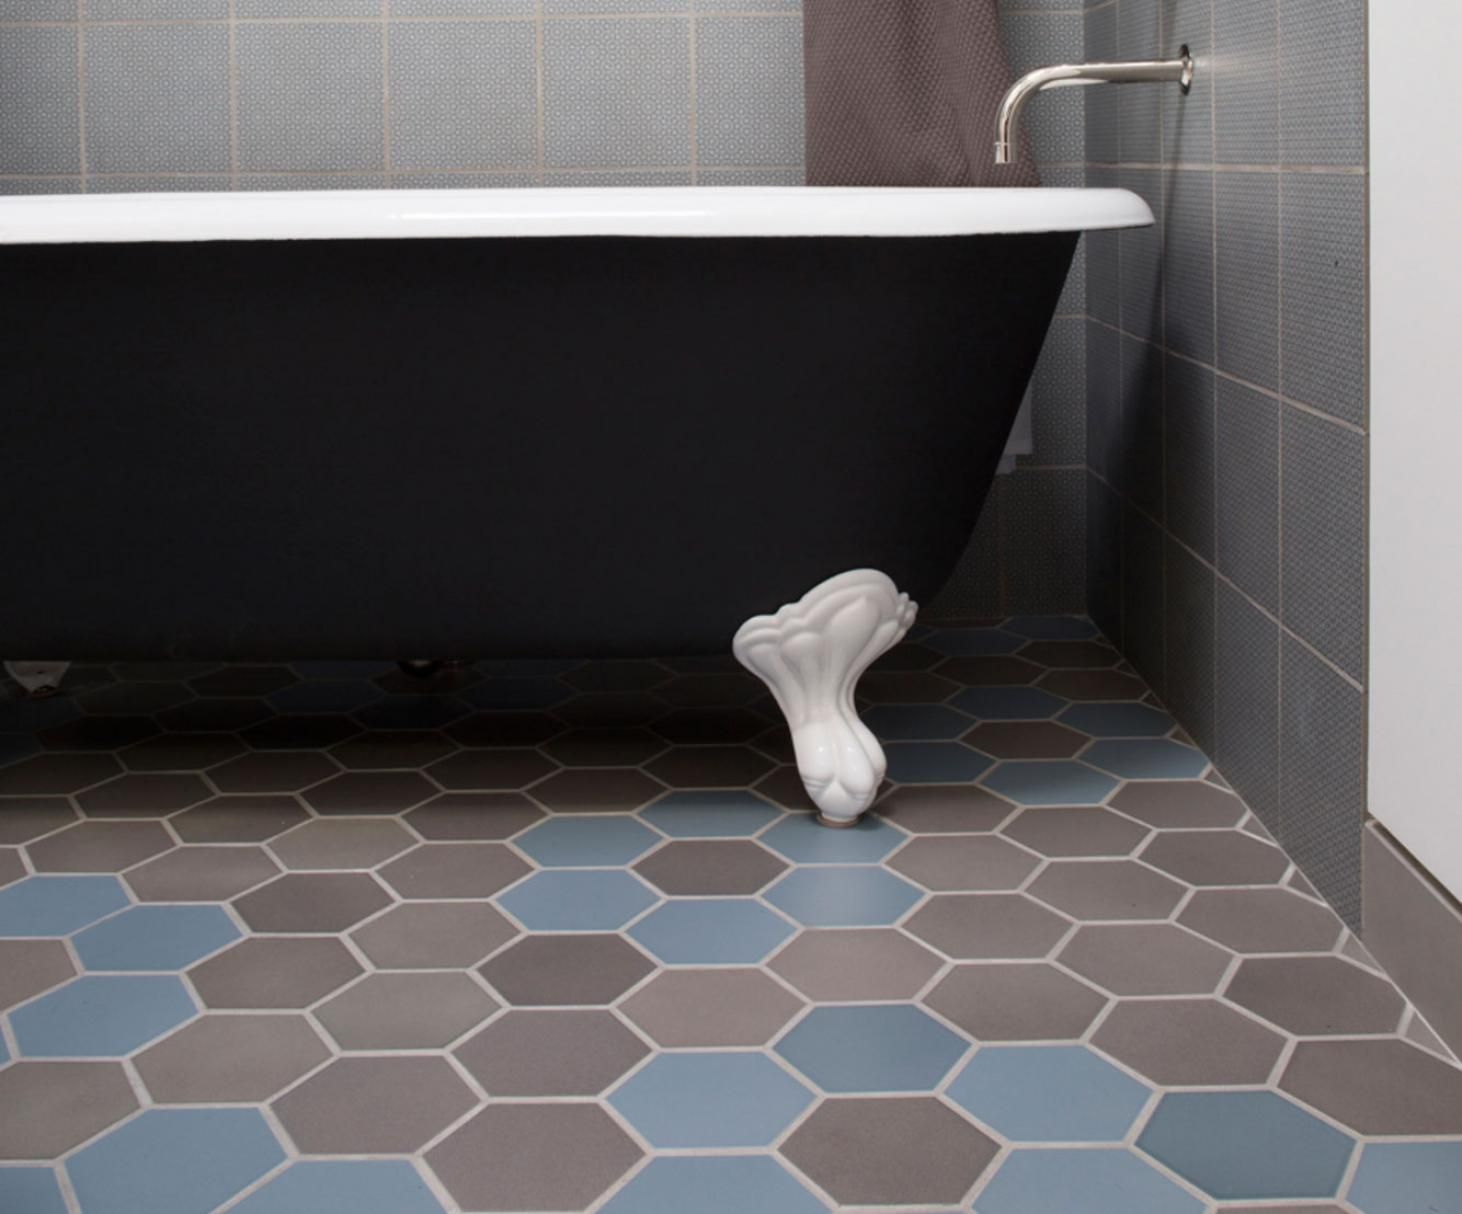 Mixing and matching shapes and glazes is harmonious in this mixing and matching shapes and glazes is harmonious in this bathroom features hex tile in blue fog variation and shade light variation heath ceramics doublecrazyfo Choice Image